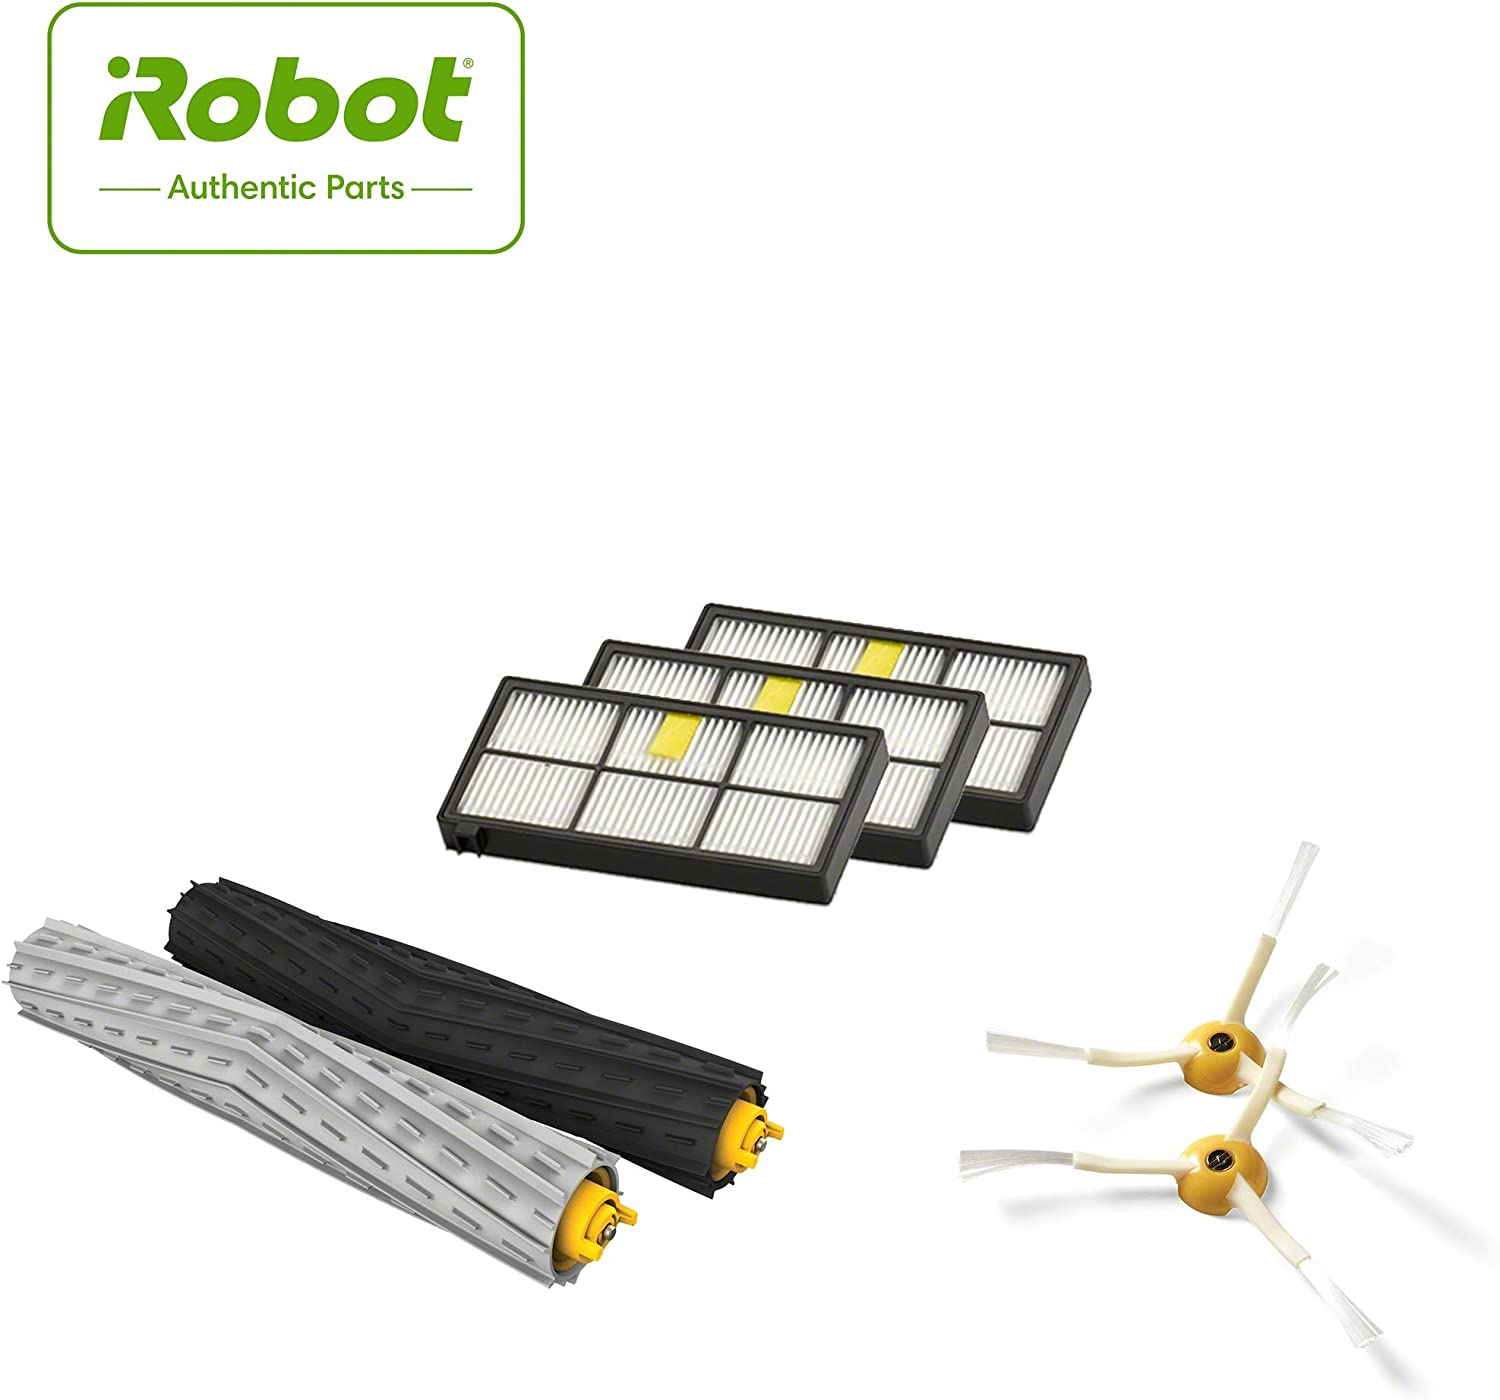 iRobot Roomba 800 y 900 Series Kit de Accesorios de reposición, Color Blanco: Amazon.es: Hogar